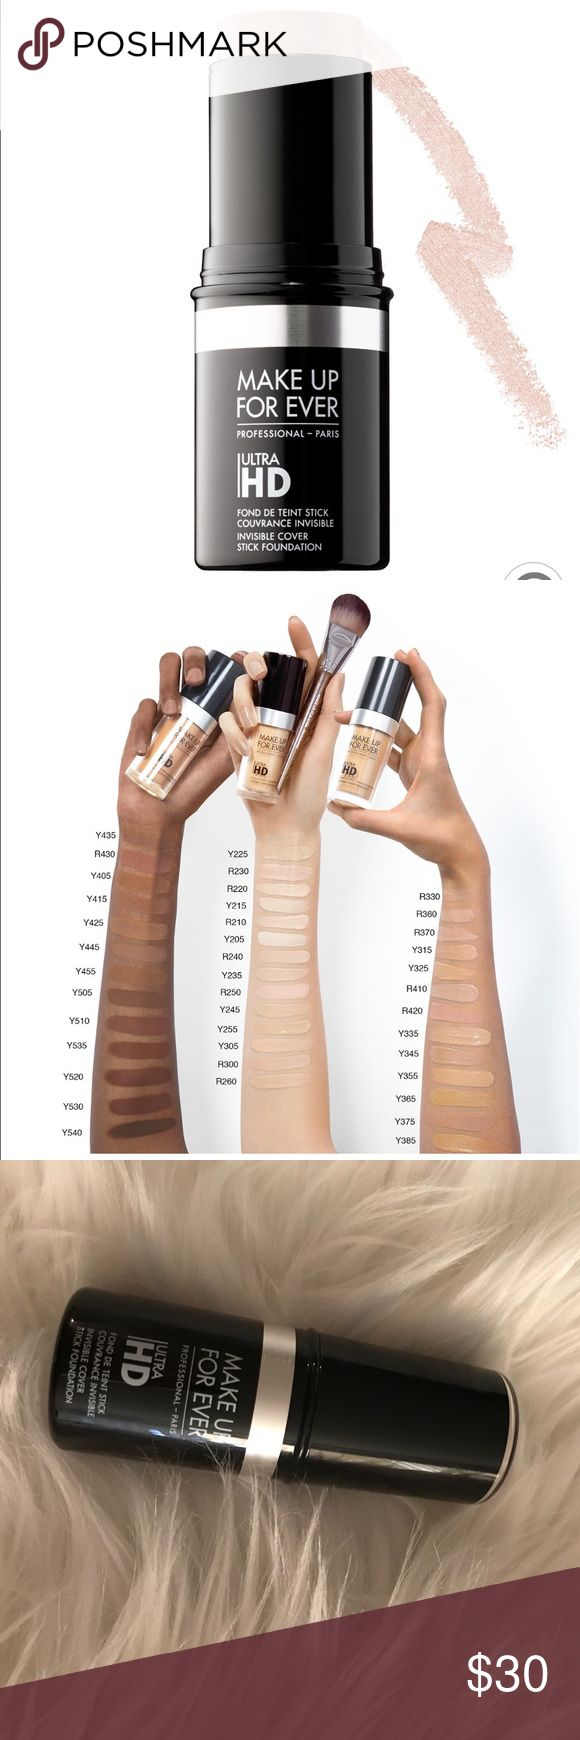 New Makeup Forever Ultra HD Foundation Stick Y205 Product Info on photos taken from Sephora.com. Brand new, never used or swatched. Makeup Forever Makeup Foundation